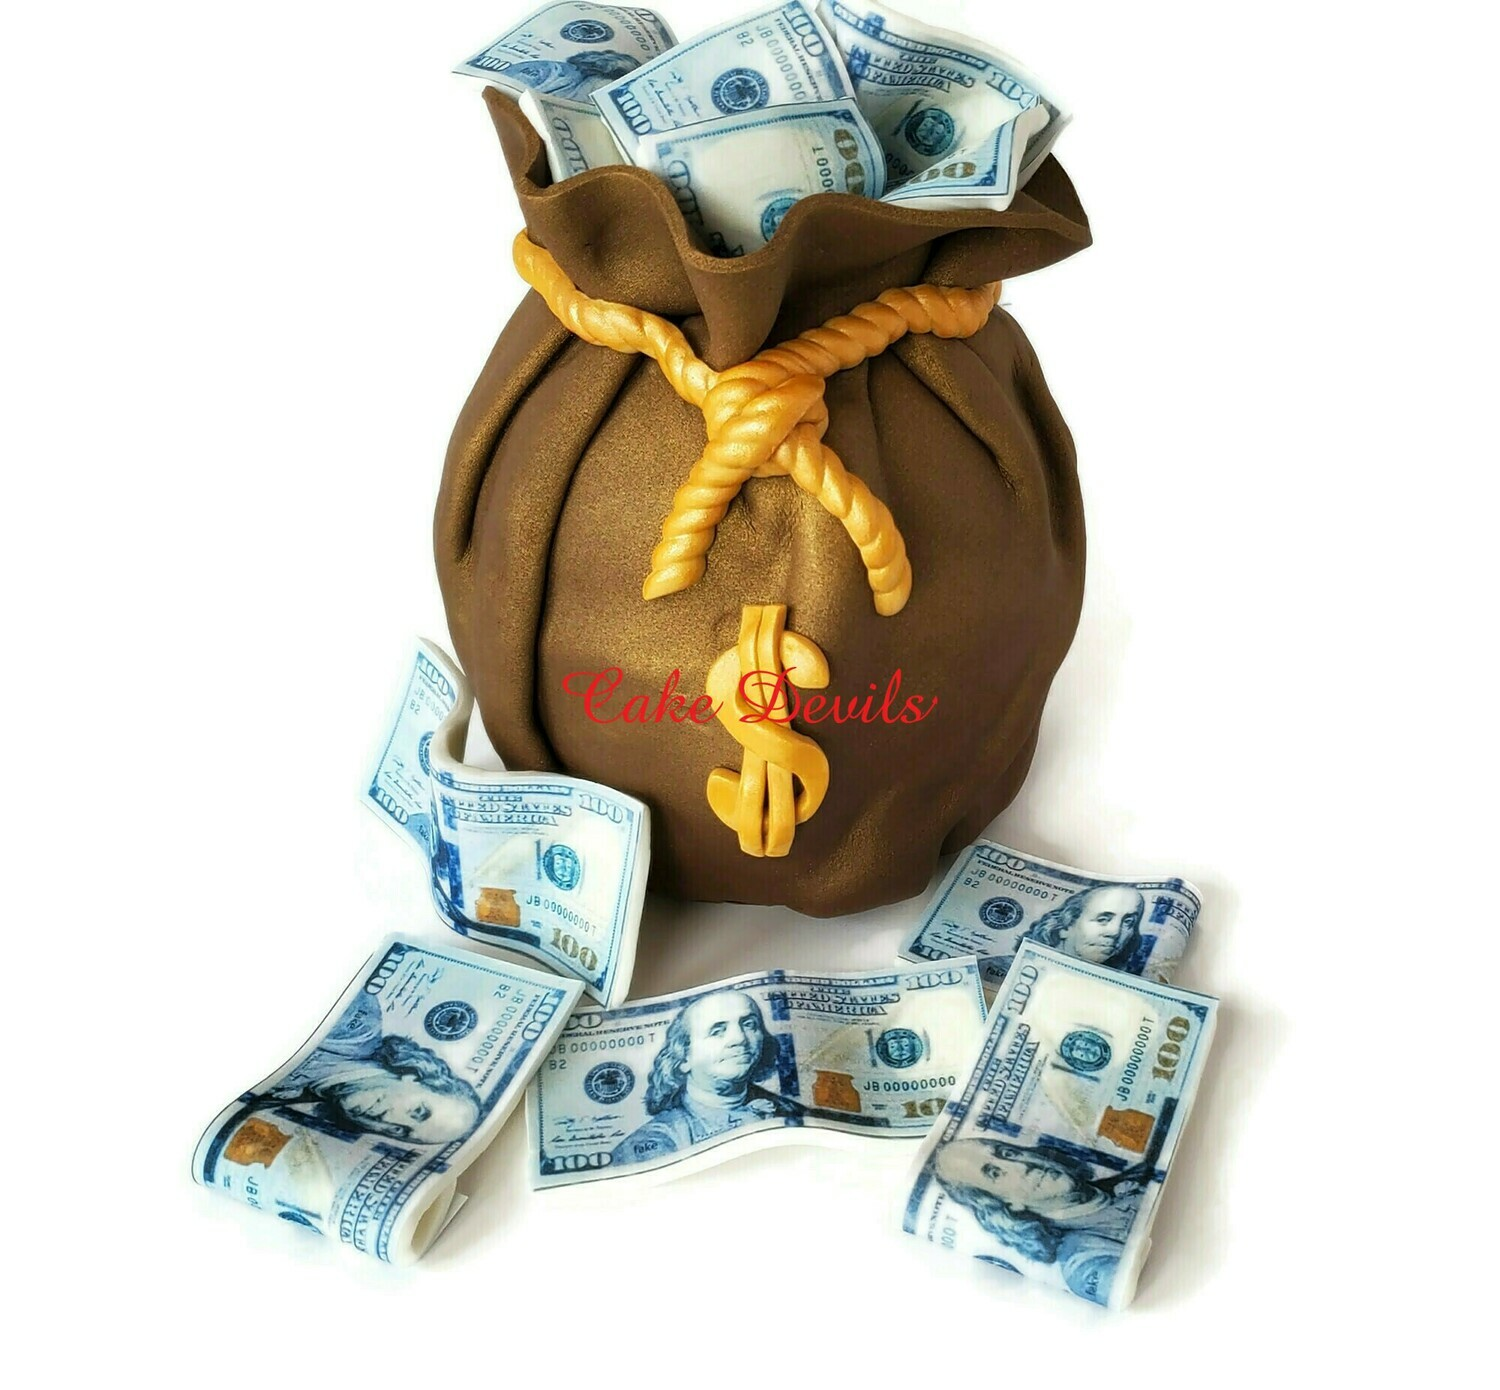 Fondant Money Bag and Edible Money $100 Bills Cake Toppers